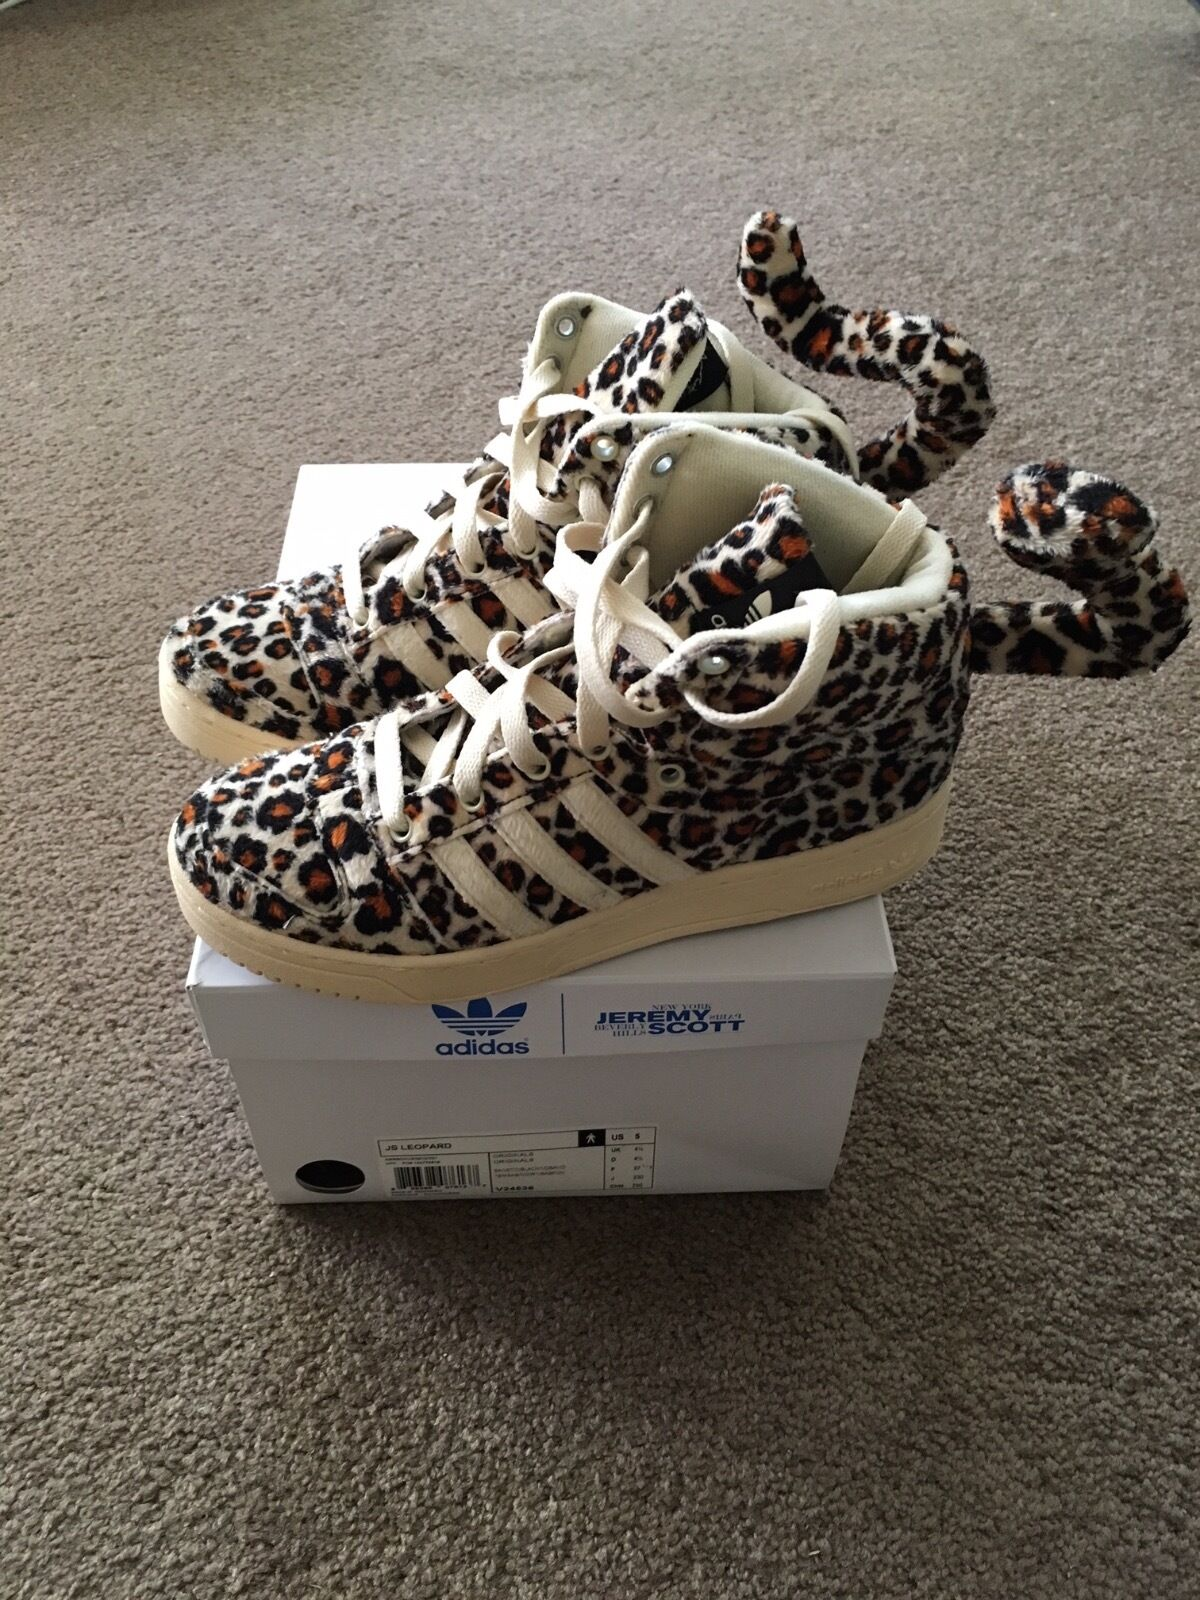 Jeremy Scott Adidas Leopard Tail Sneakers US 5 / 35 Unisex